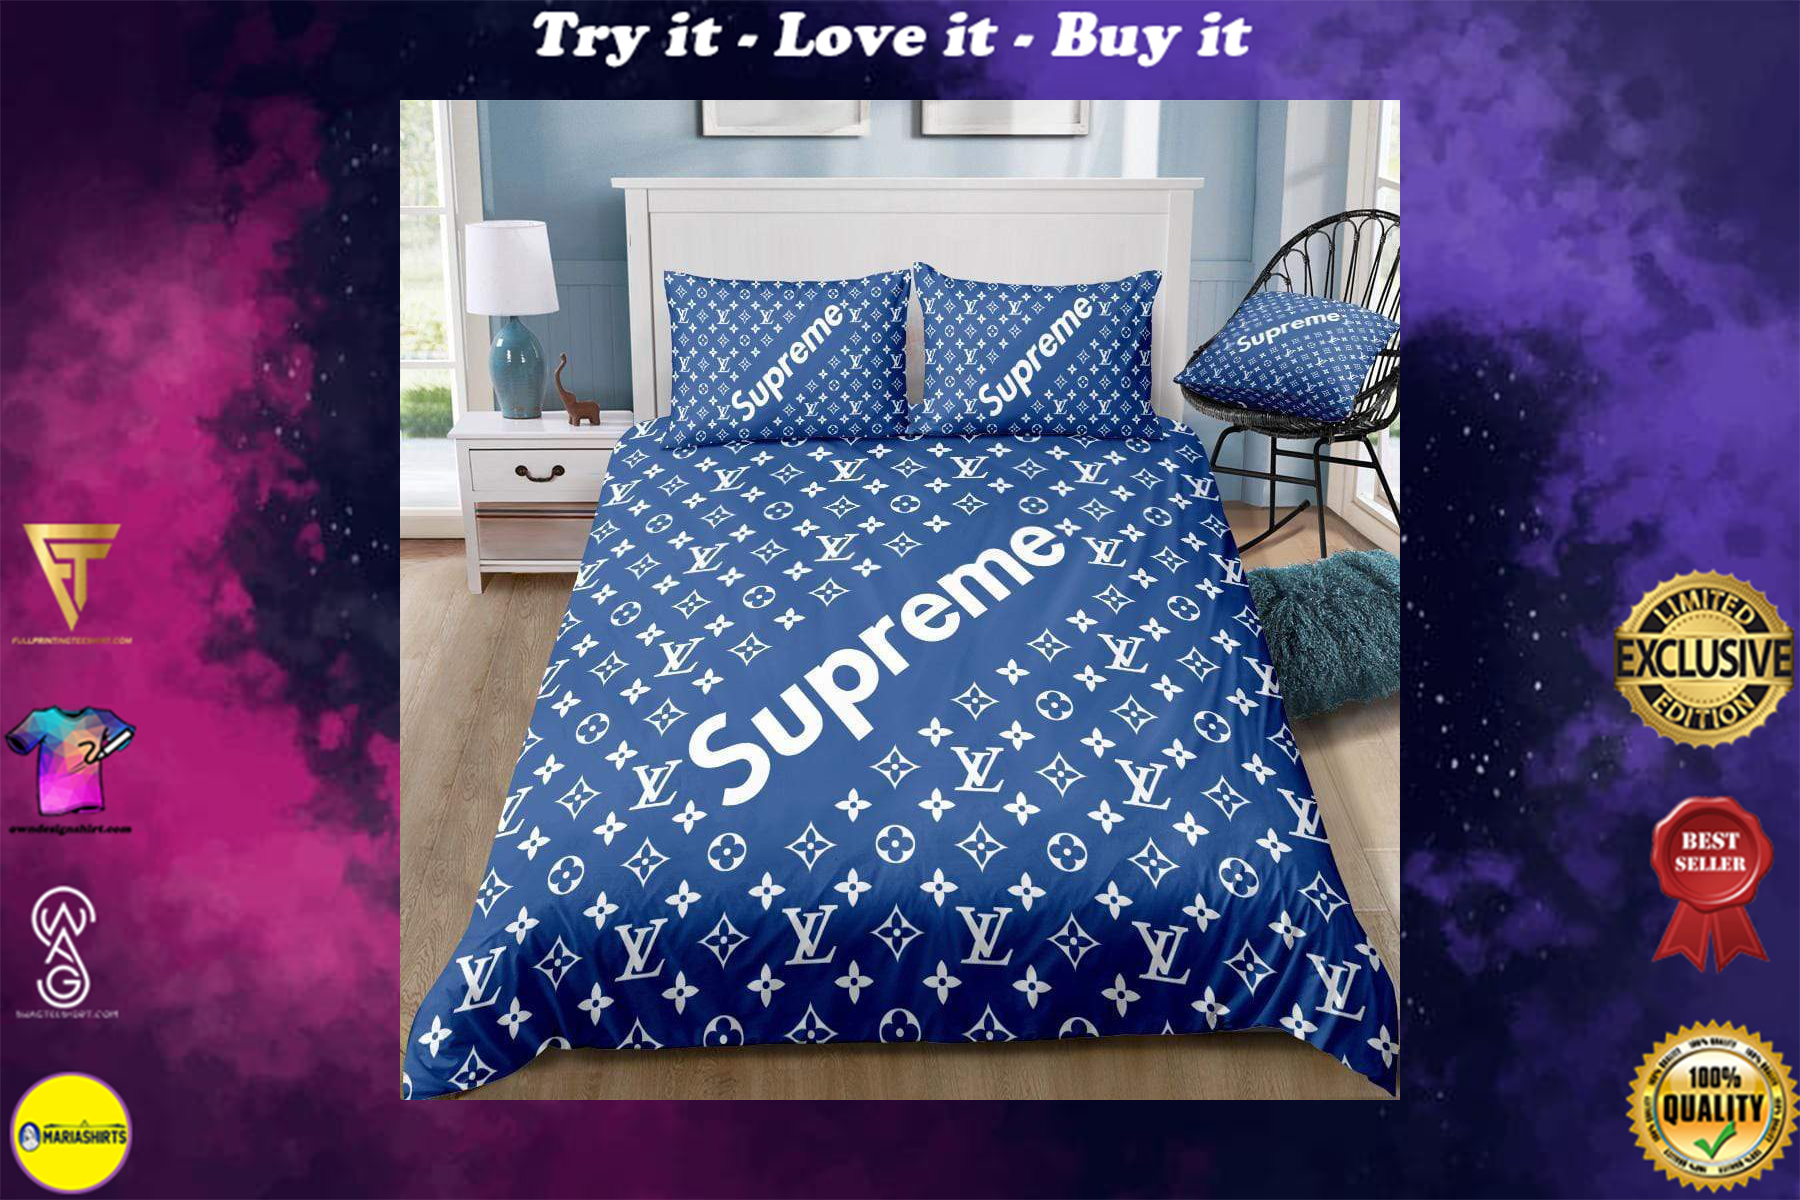 [special edition] louis vuitton and supreme bedding set - maria